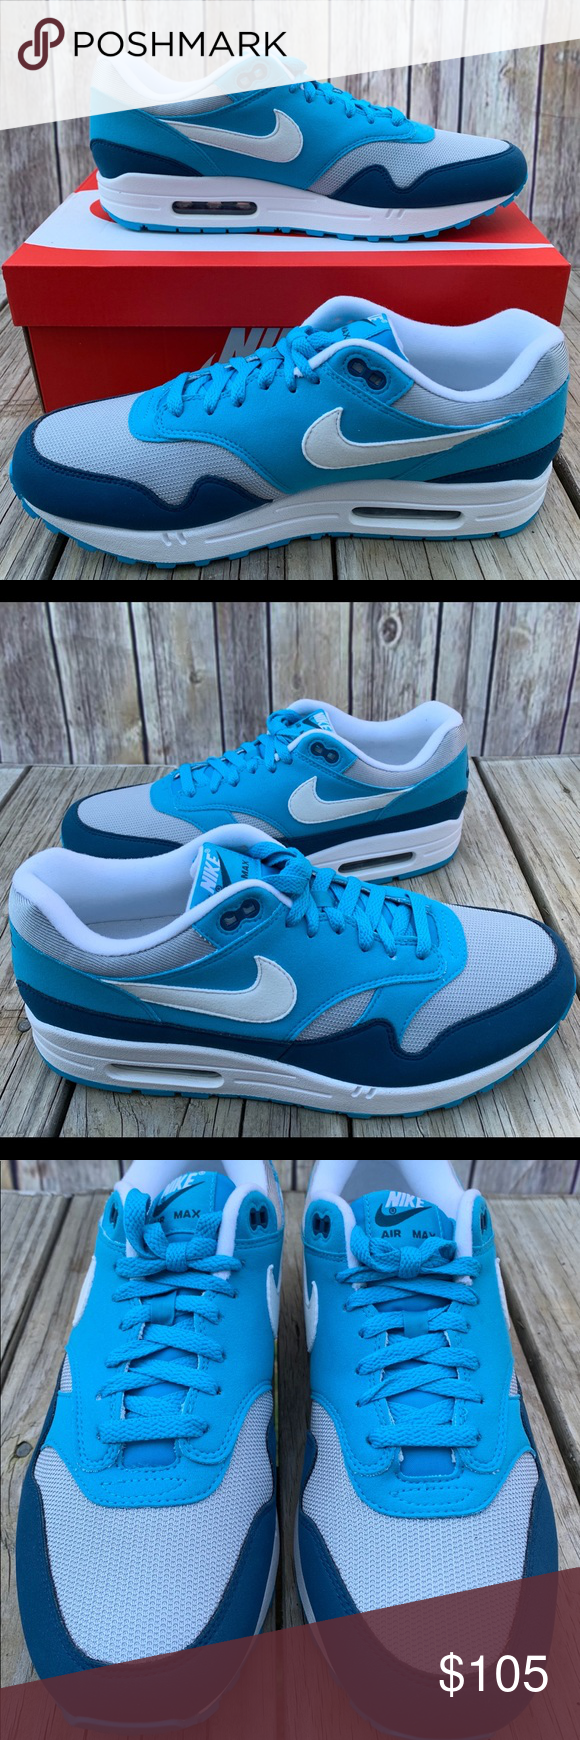 the latest 99f63 58aa3 Nike Air Max 1 Light Blue Fury sz 10.5 Nike Air Max 1 Men s Shoes Wolf